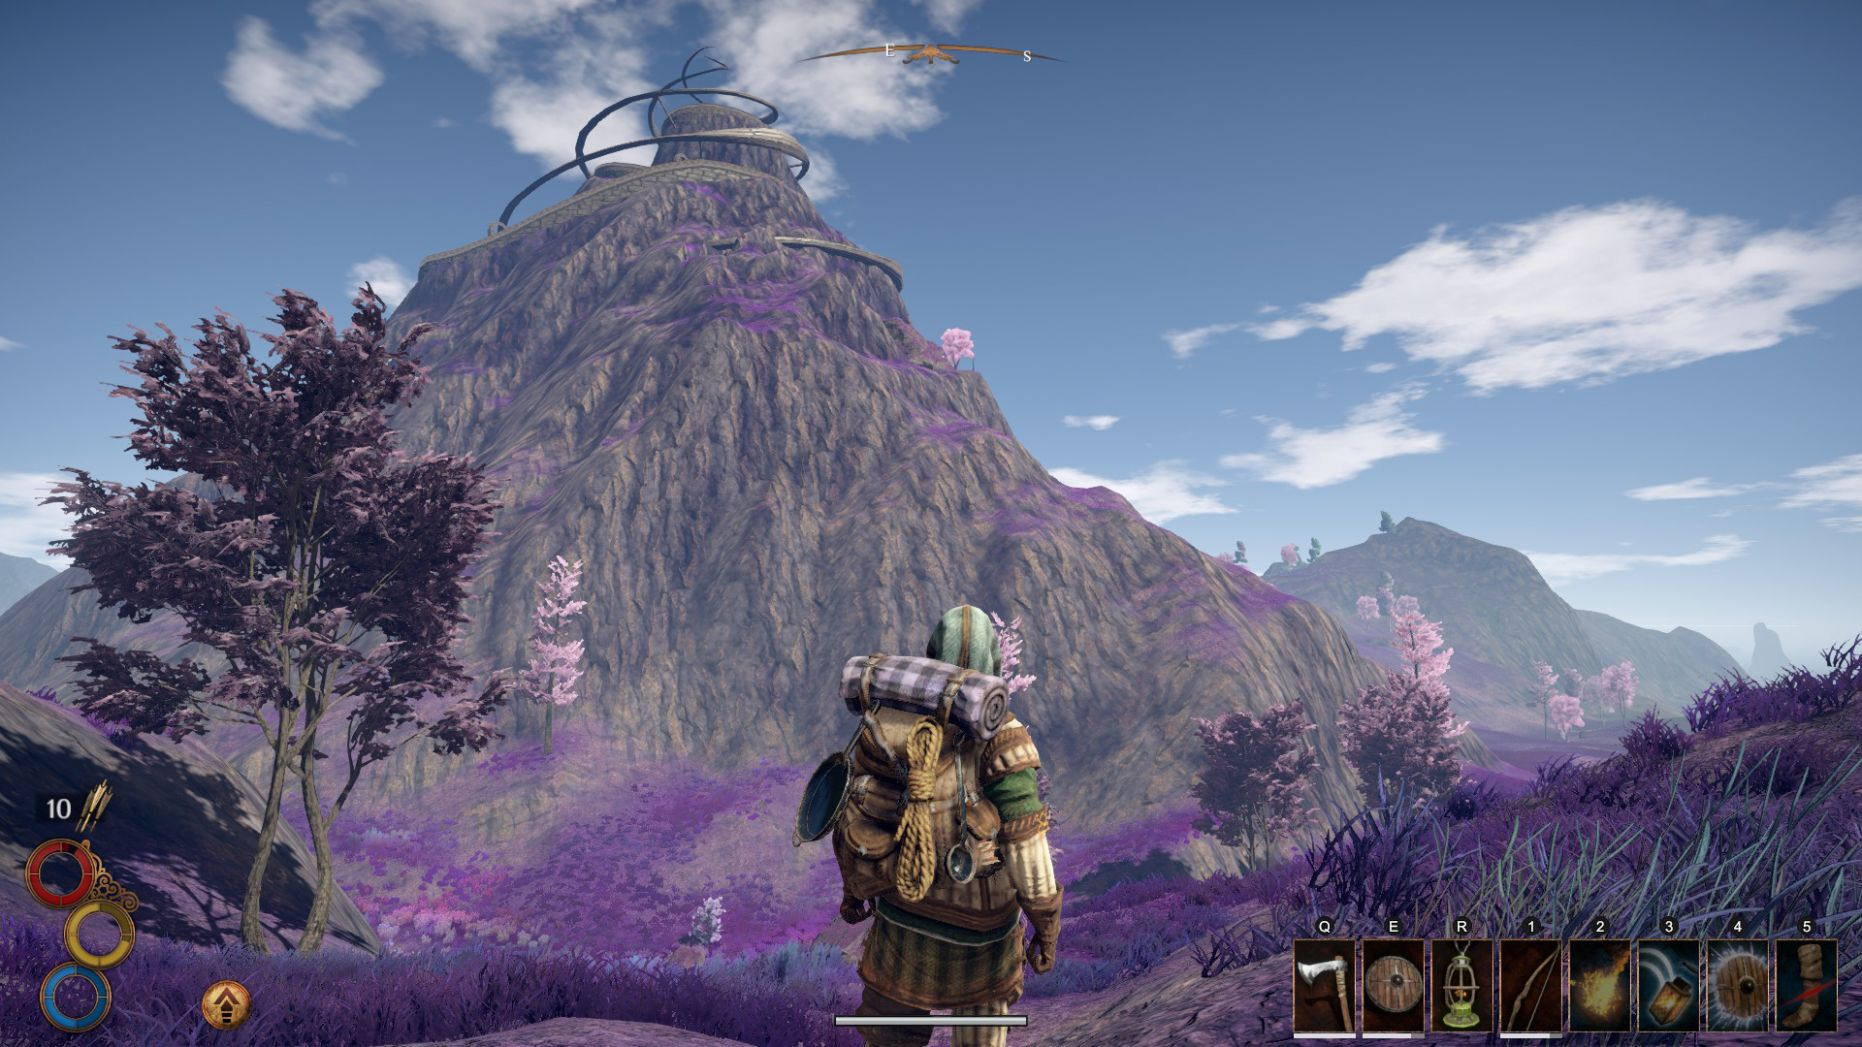 Fantasy RPG Outward is the survival game I've been looking for ...